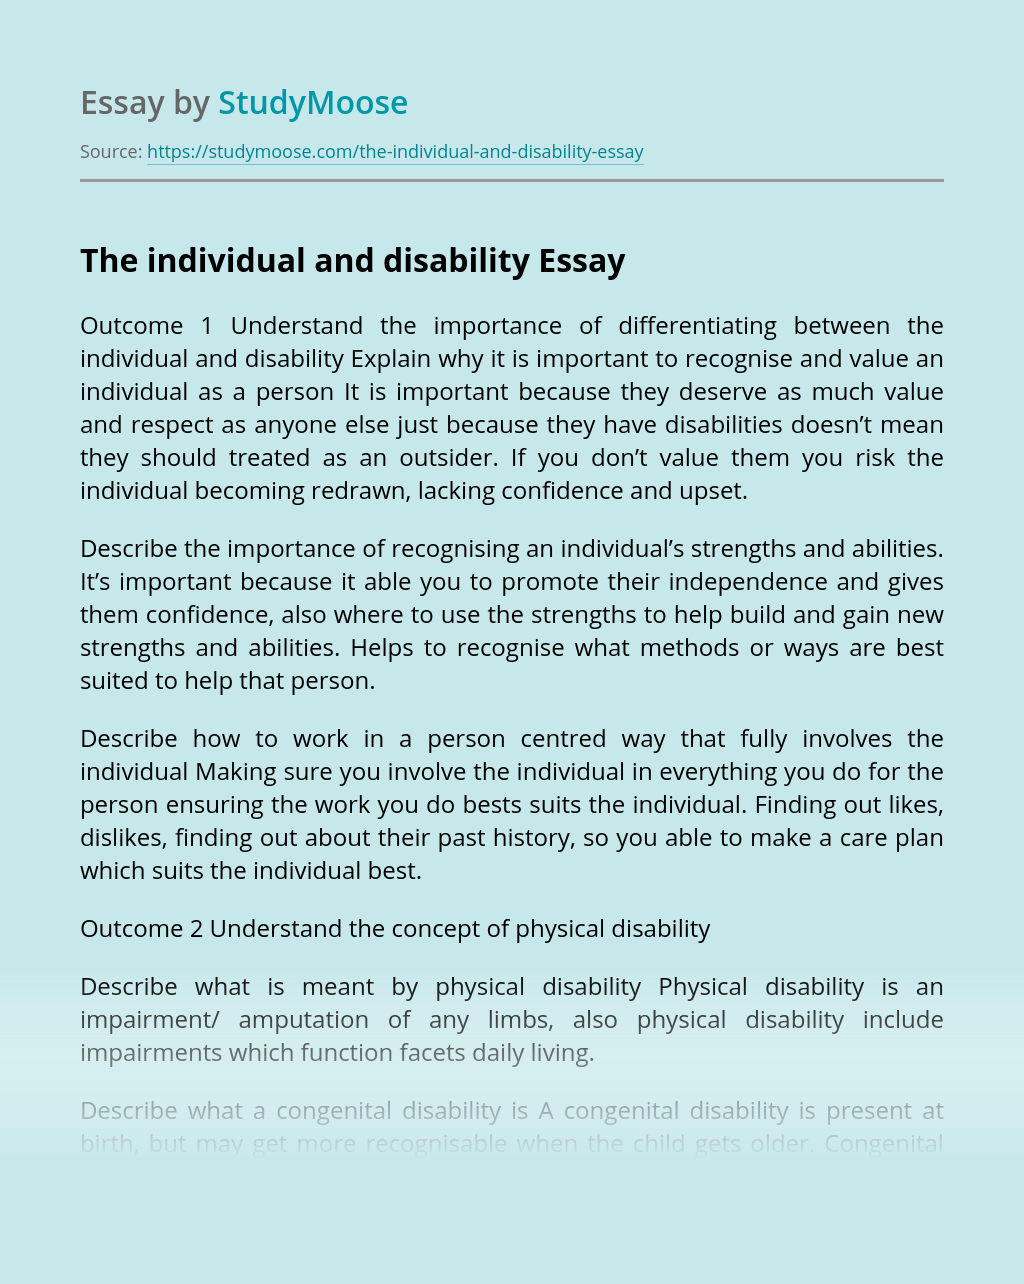 The individual and disability